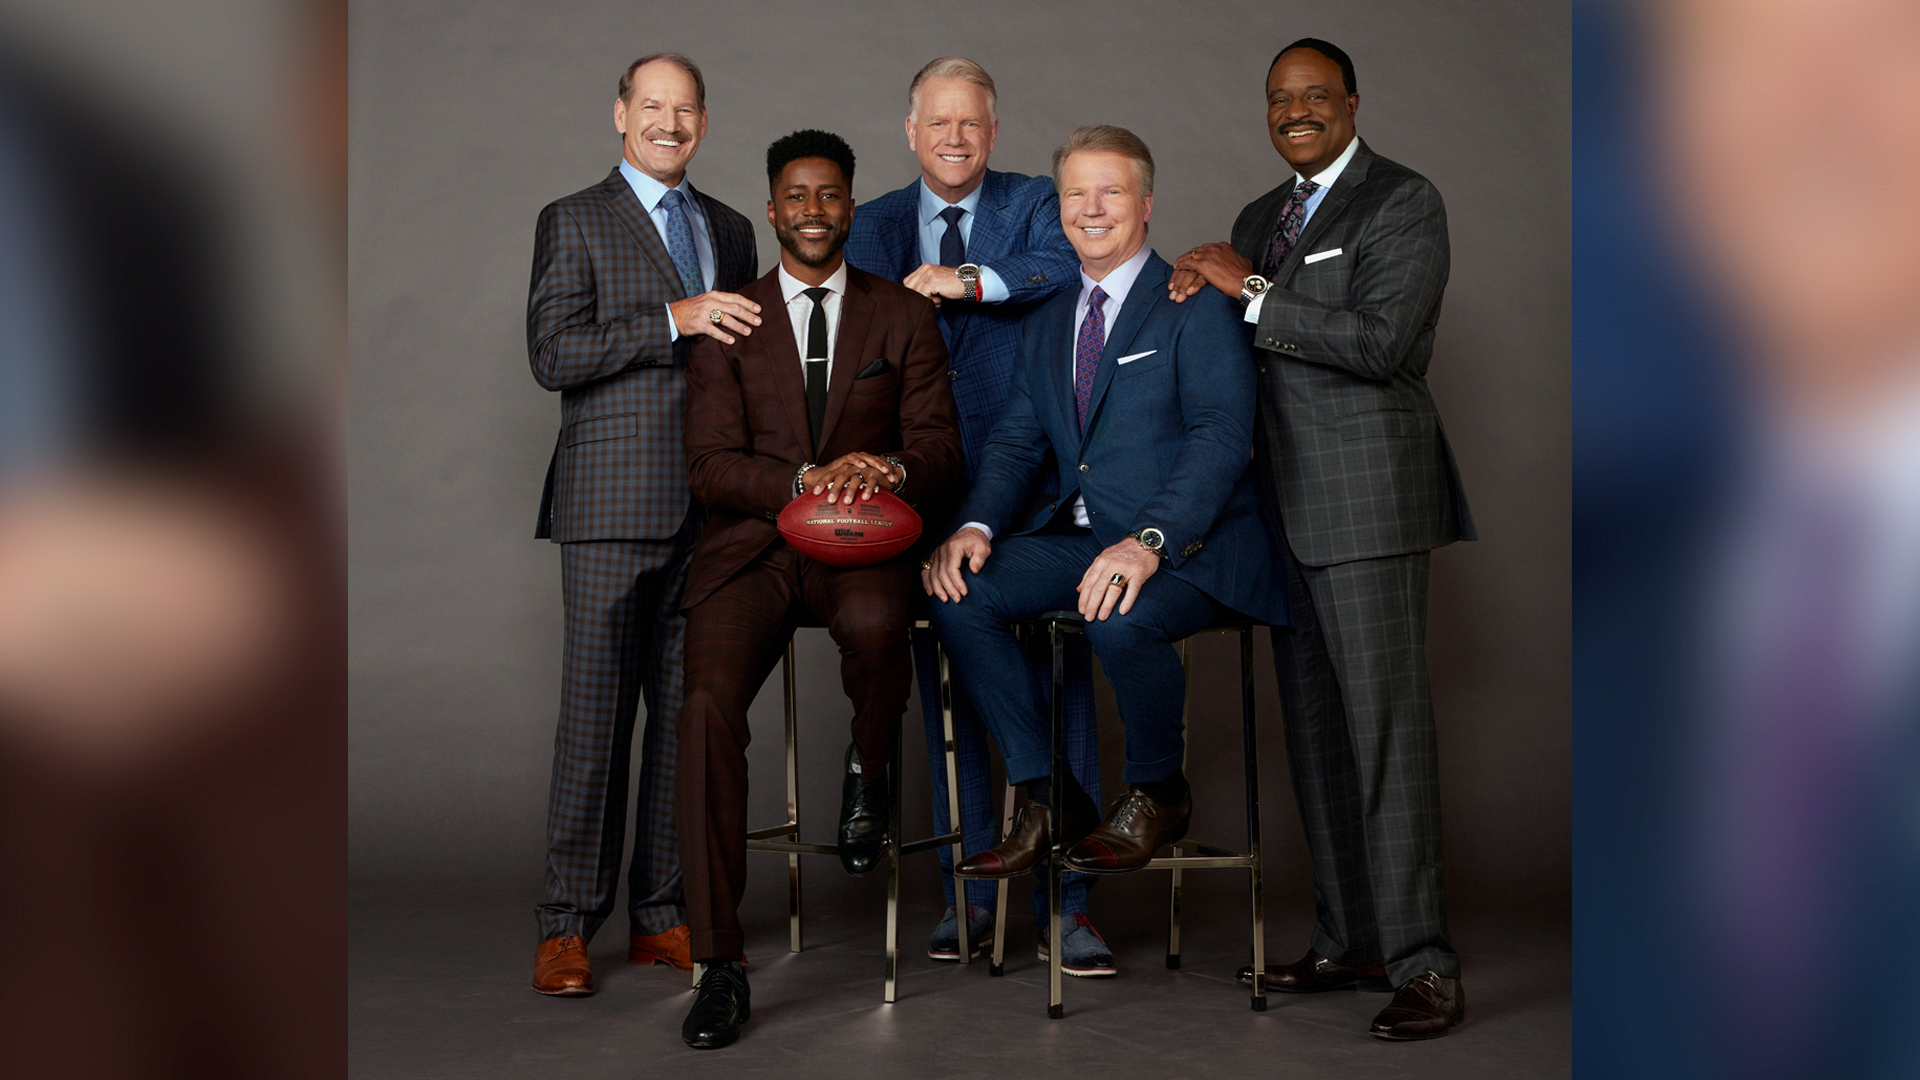 The NFL Today hosts make football fun, and these exclusive new photos prove it!